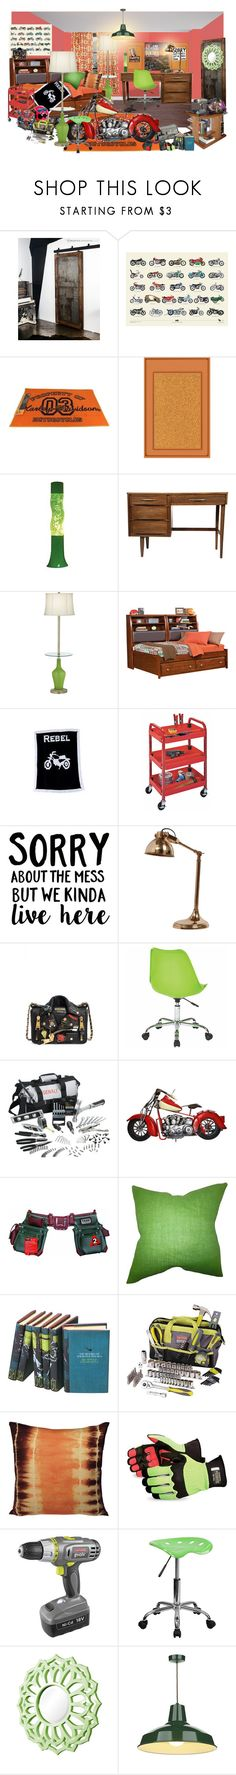 """""""tough chic"""" by sterlingkitten on Polyvore featuring interior, interiors, interior design, home, home decor, interior decorating, Improvements, Moschino, BMW and Pacha"""